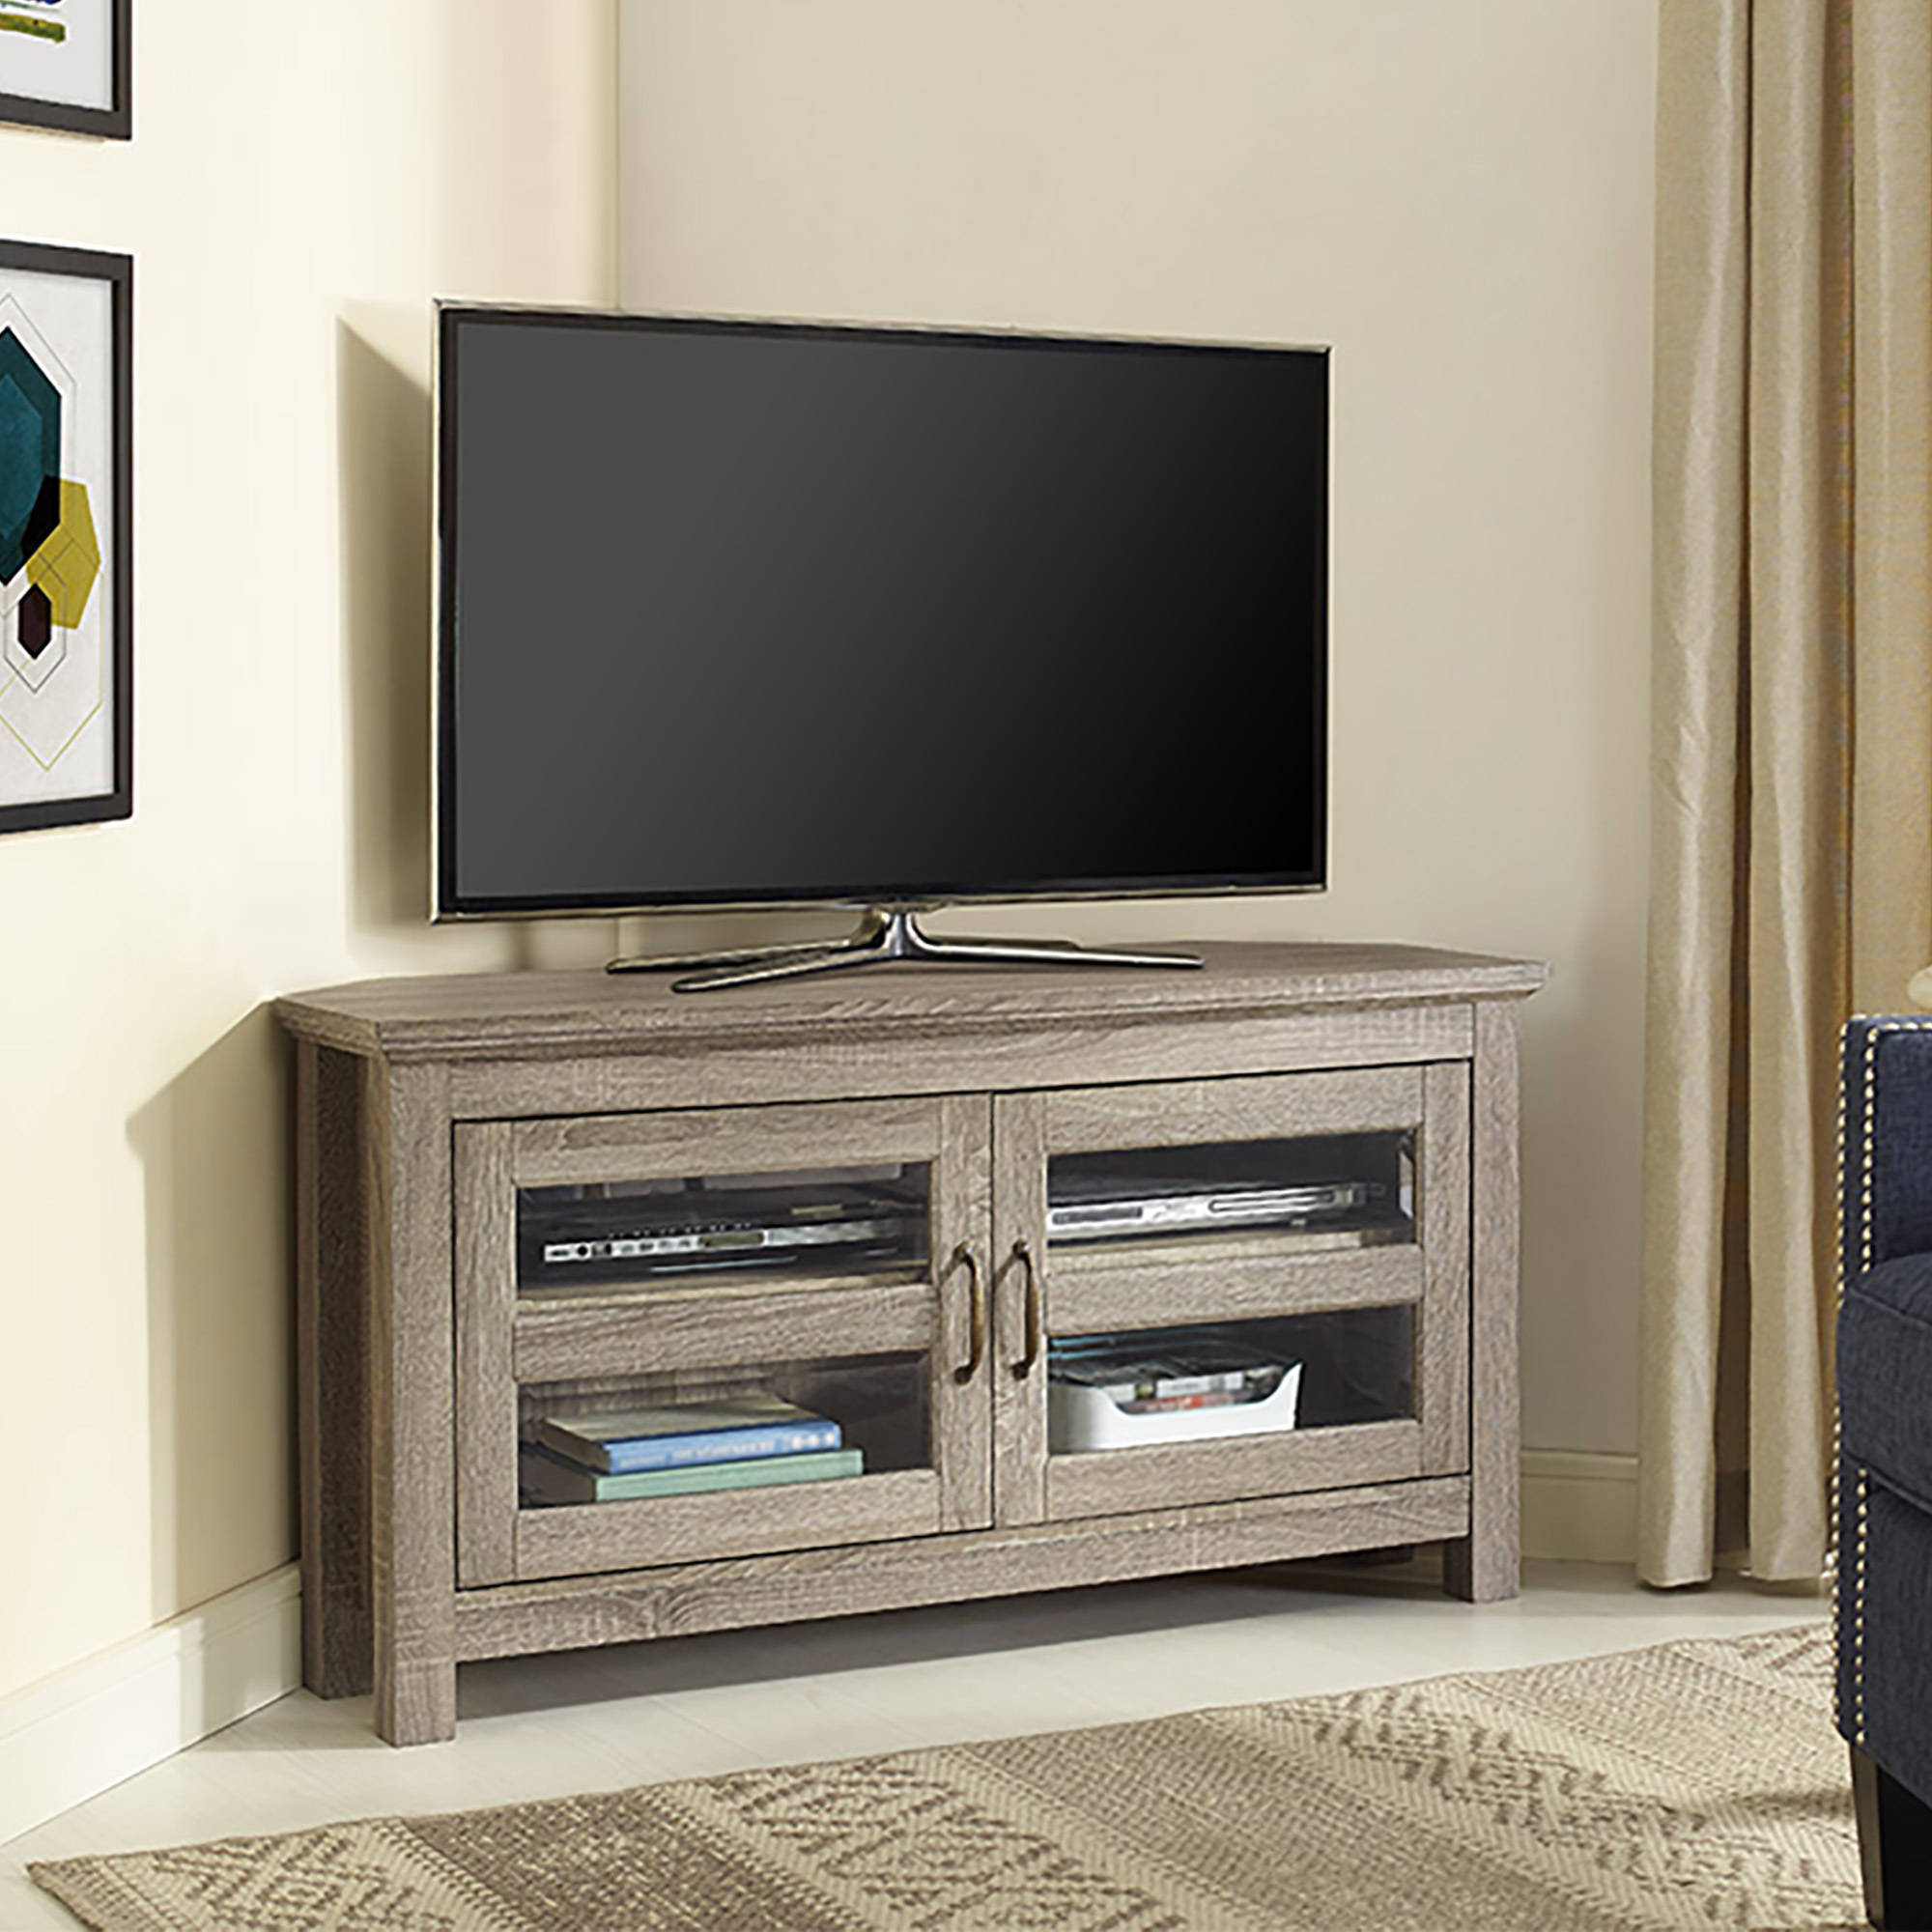 2017 Tv Stand With Mount Target Cheap 60 Inch Corner Fireplace 55 Flat Throughout Corner Tv Stands For 55 Inch Tv (View 19 of 20)